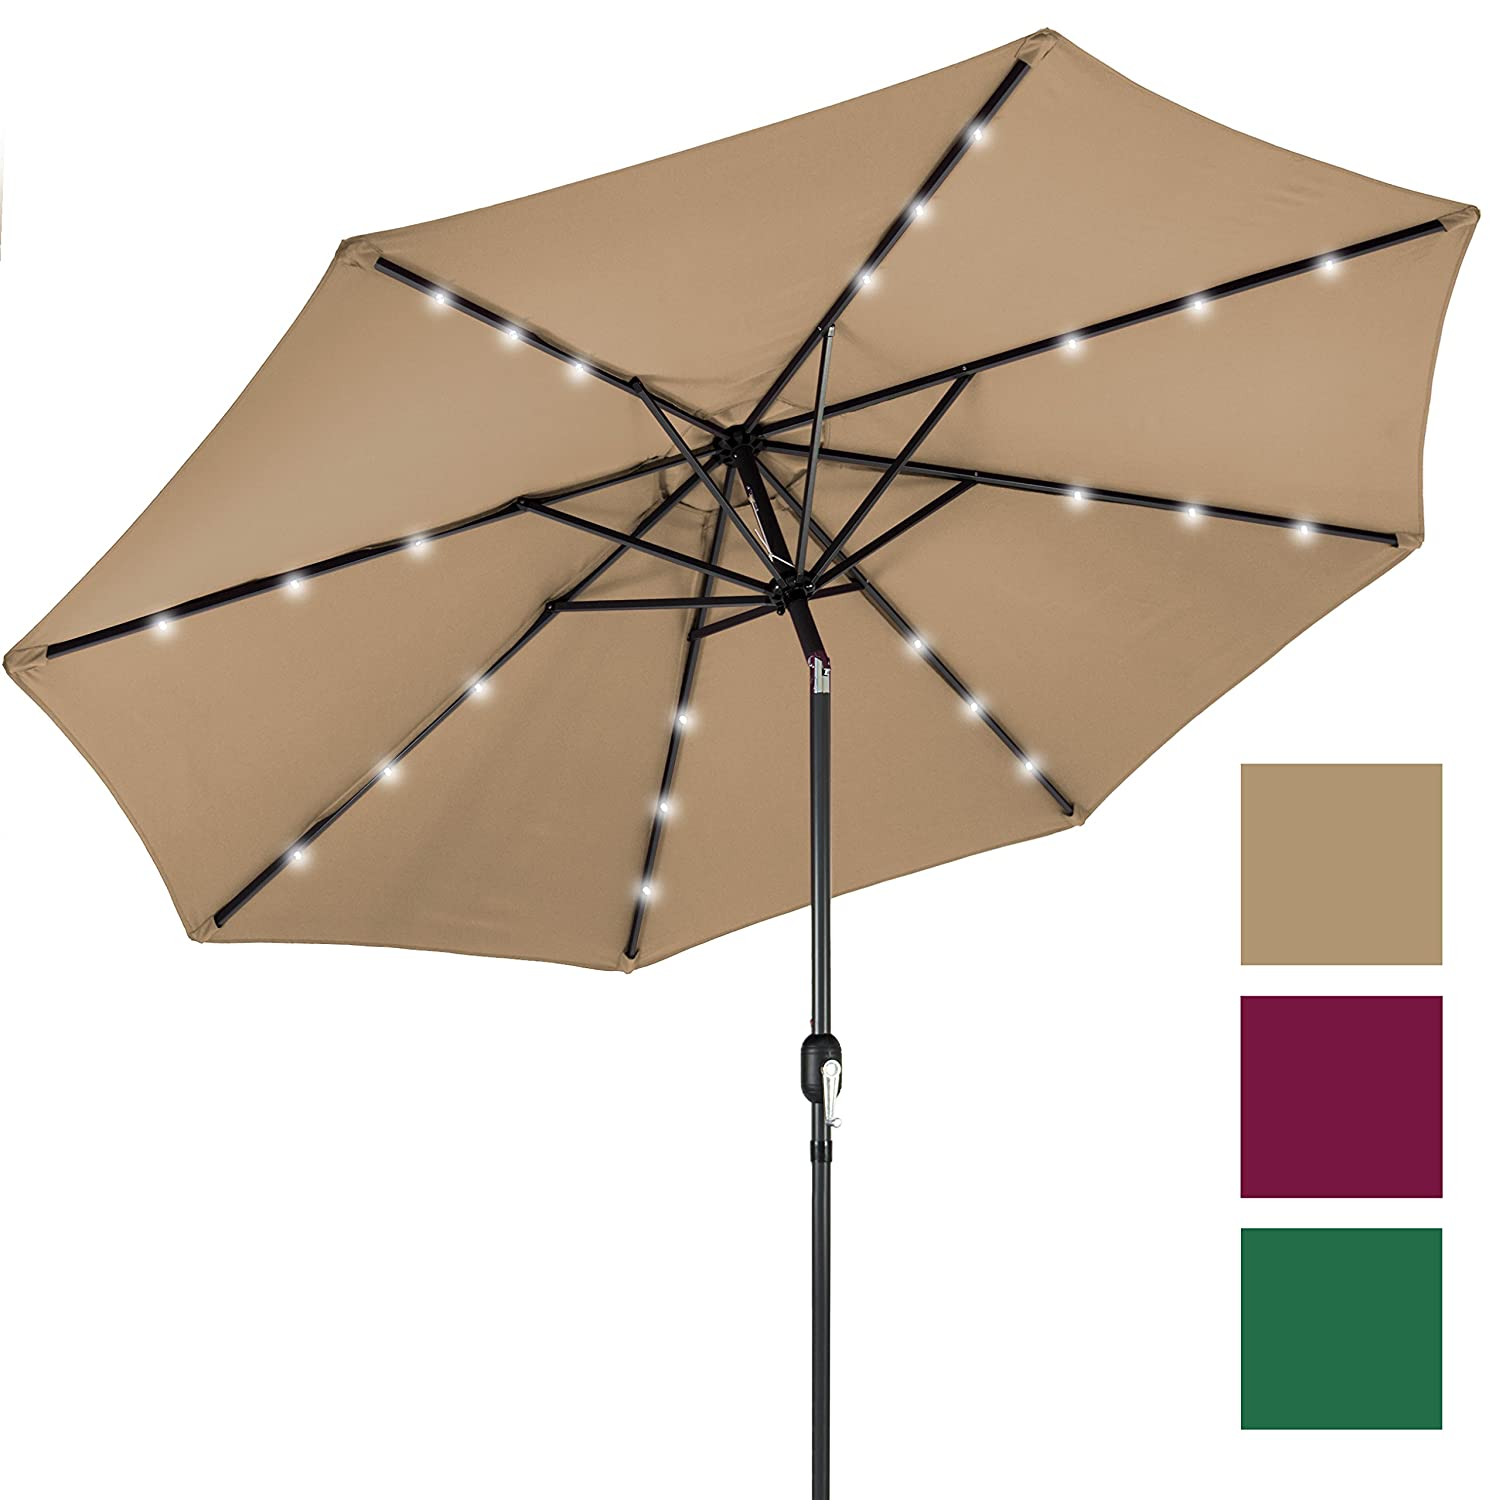 Best Choice Products 10' Deluxe Solar LED Lighted Patio Umbrella With Tilt  Adjustment-Tan - Patio Umbrellas Amazon.com